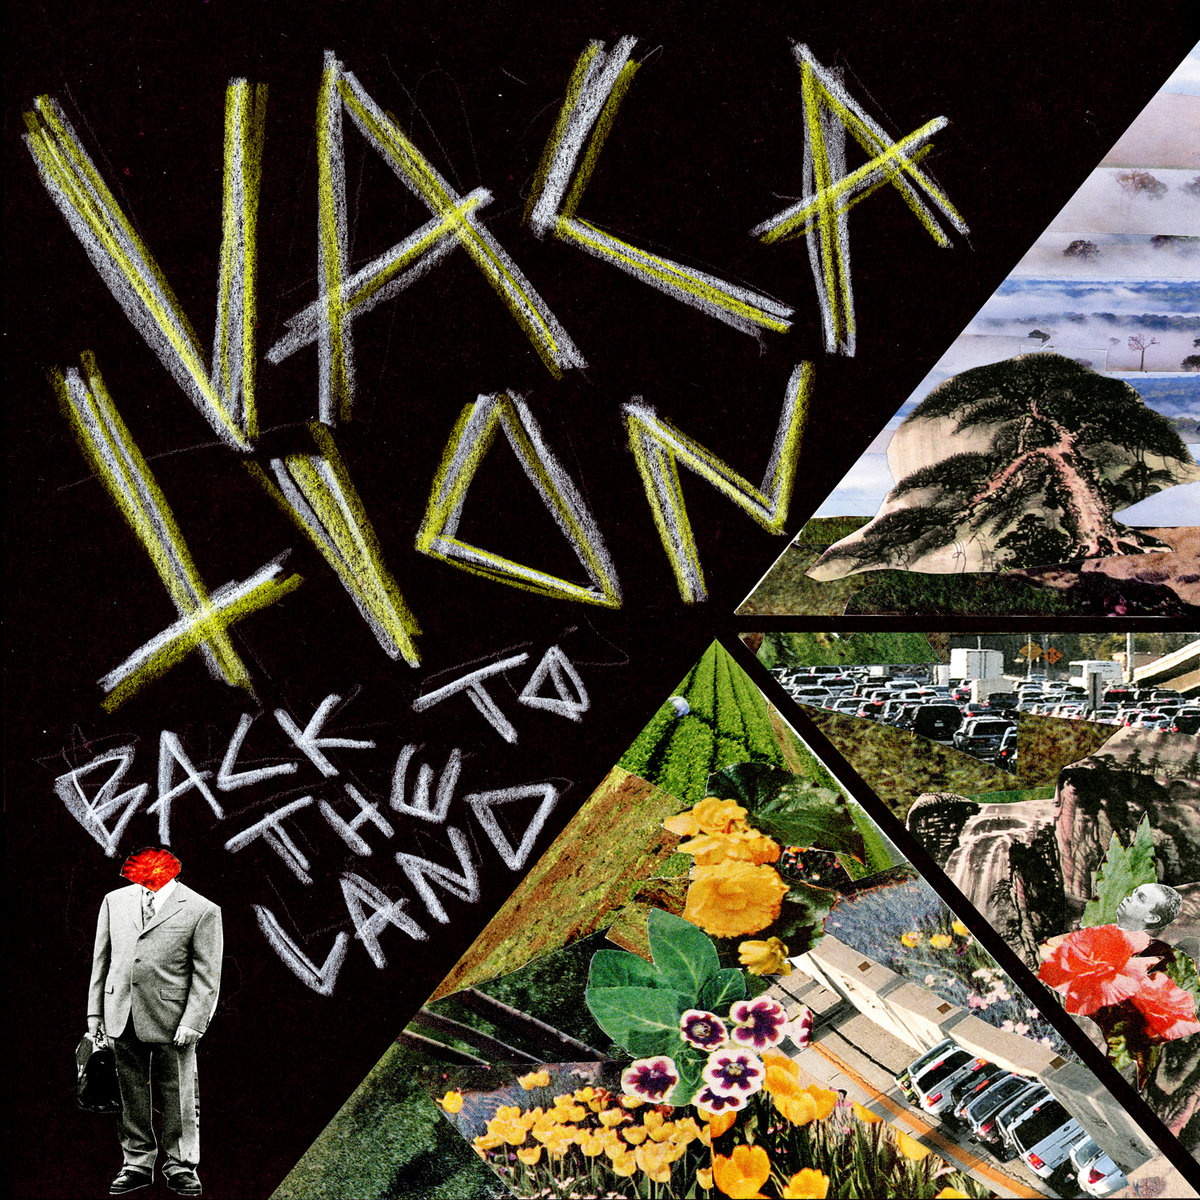 Vacation - Back To The Land 7